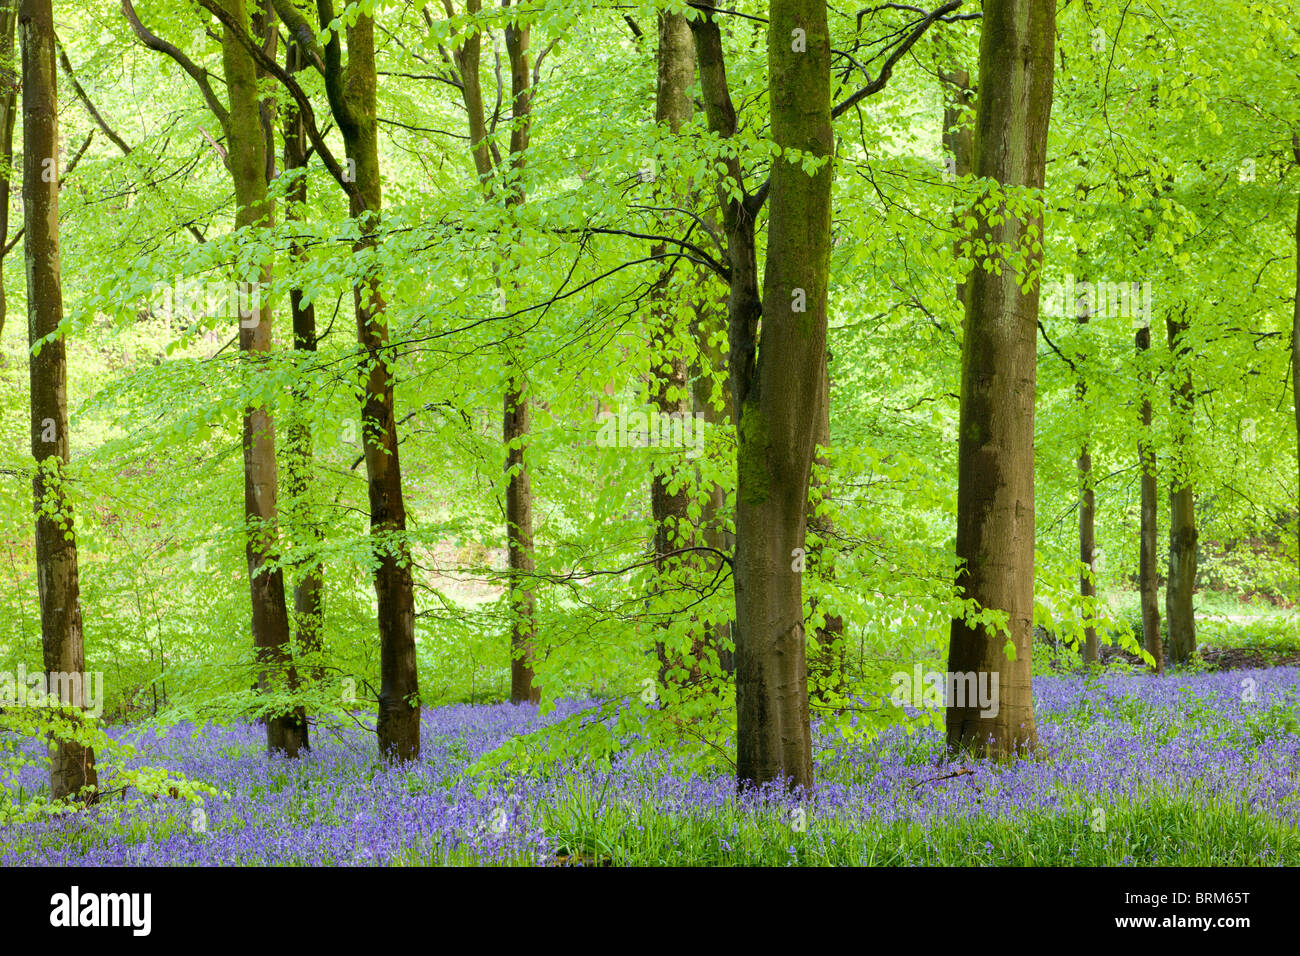 Common Bluebells (Hyacinthoides non-scripta) flowering in a beech wood, West Woods, Lockeridge, Wiltshire, England. - Stock Image